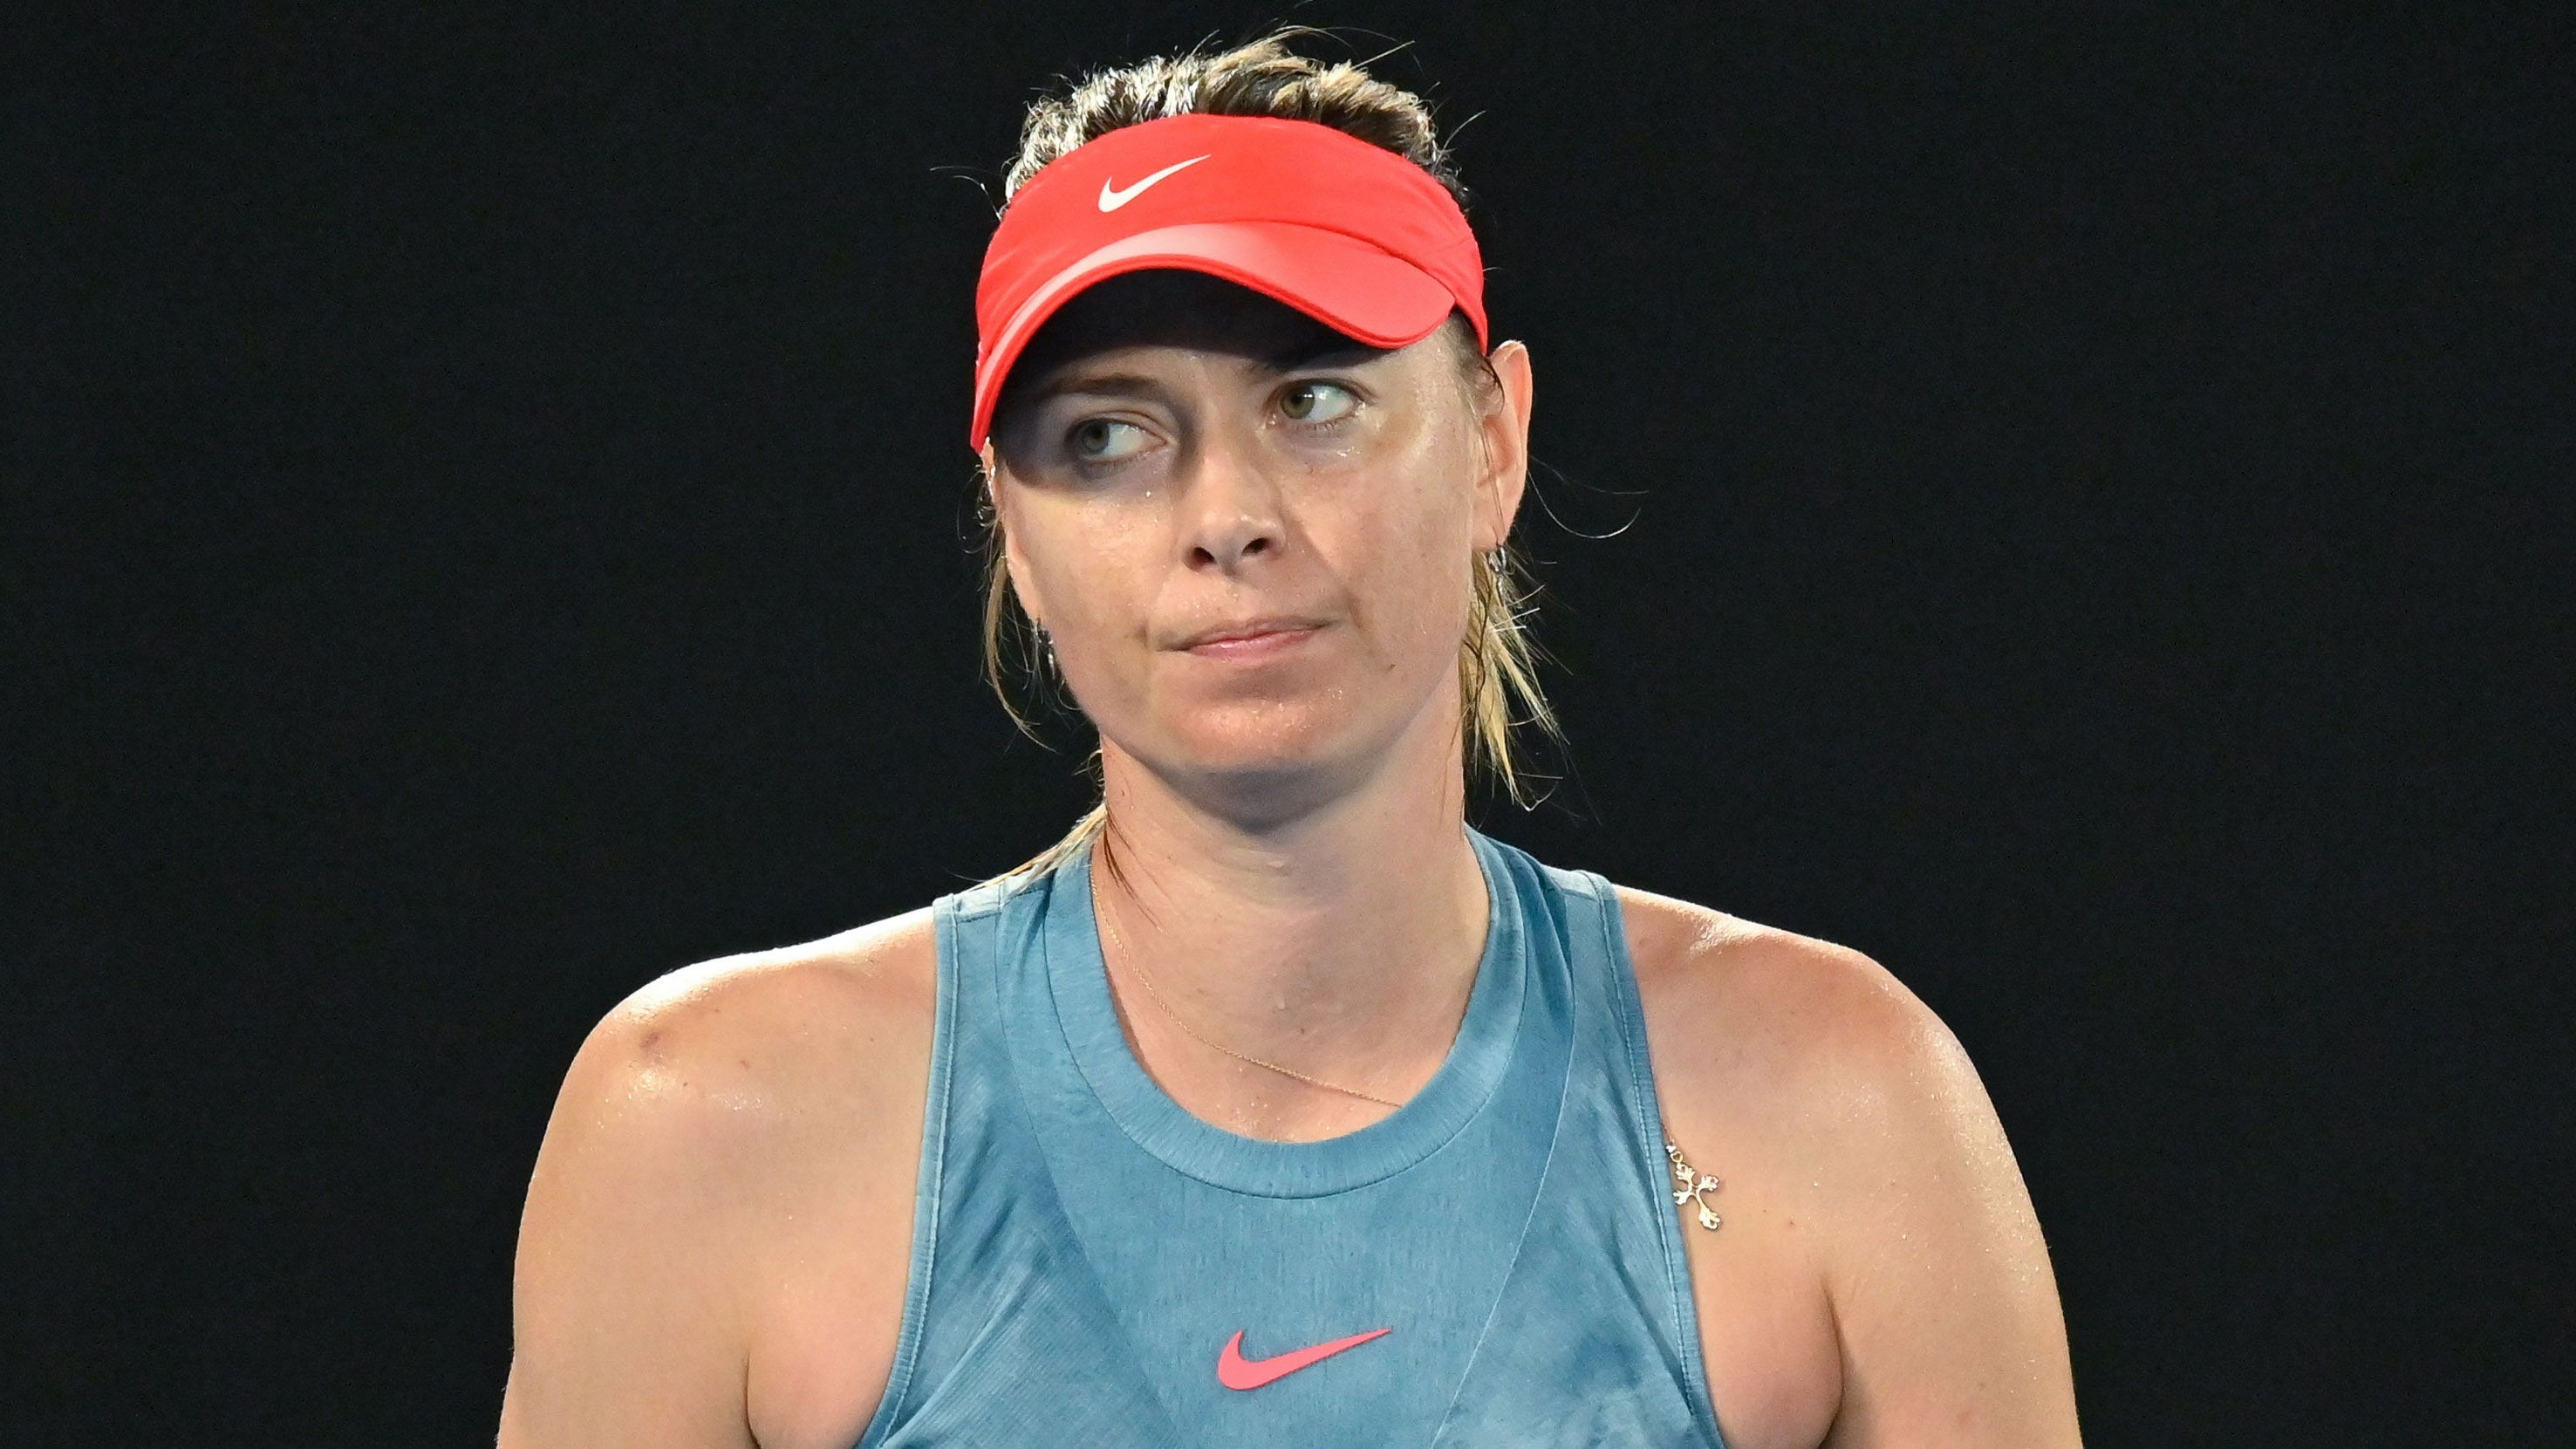 Sharapova unimpressed with questions after Melbourne exit